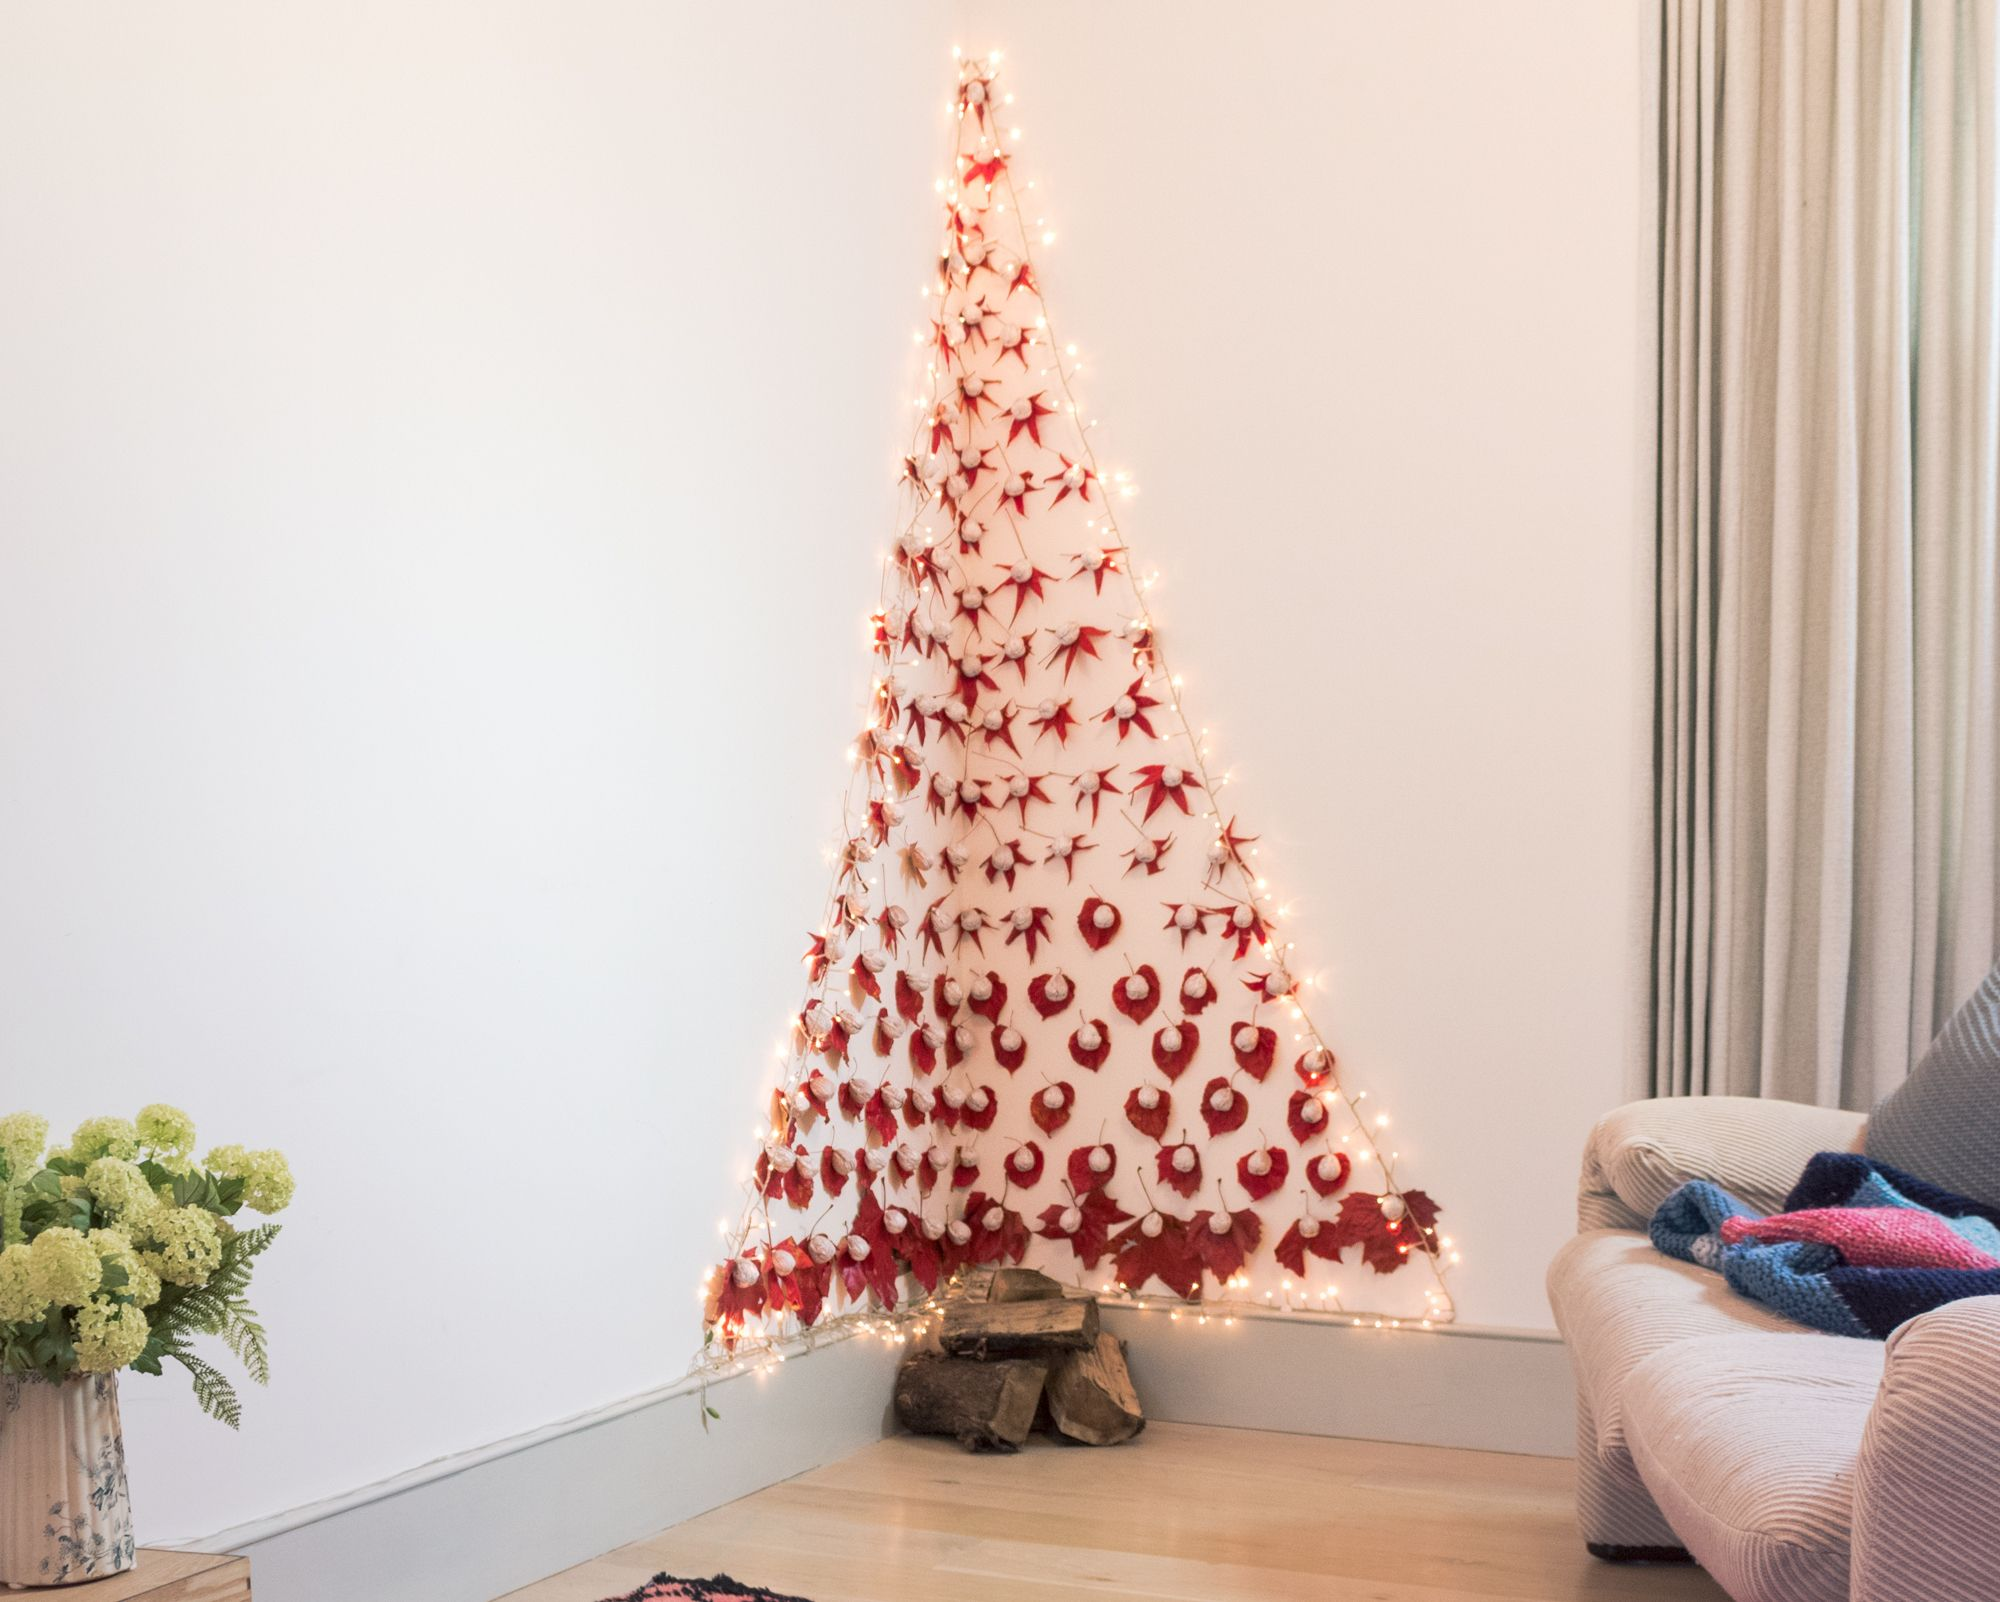 or you may have your own ideas for what you could use to make your decorations this project has several steps perfect to do in bursts over a weekend